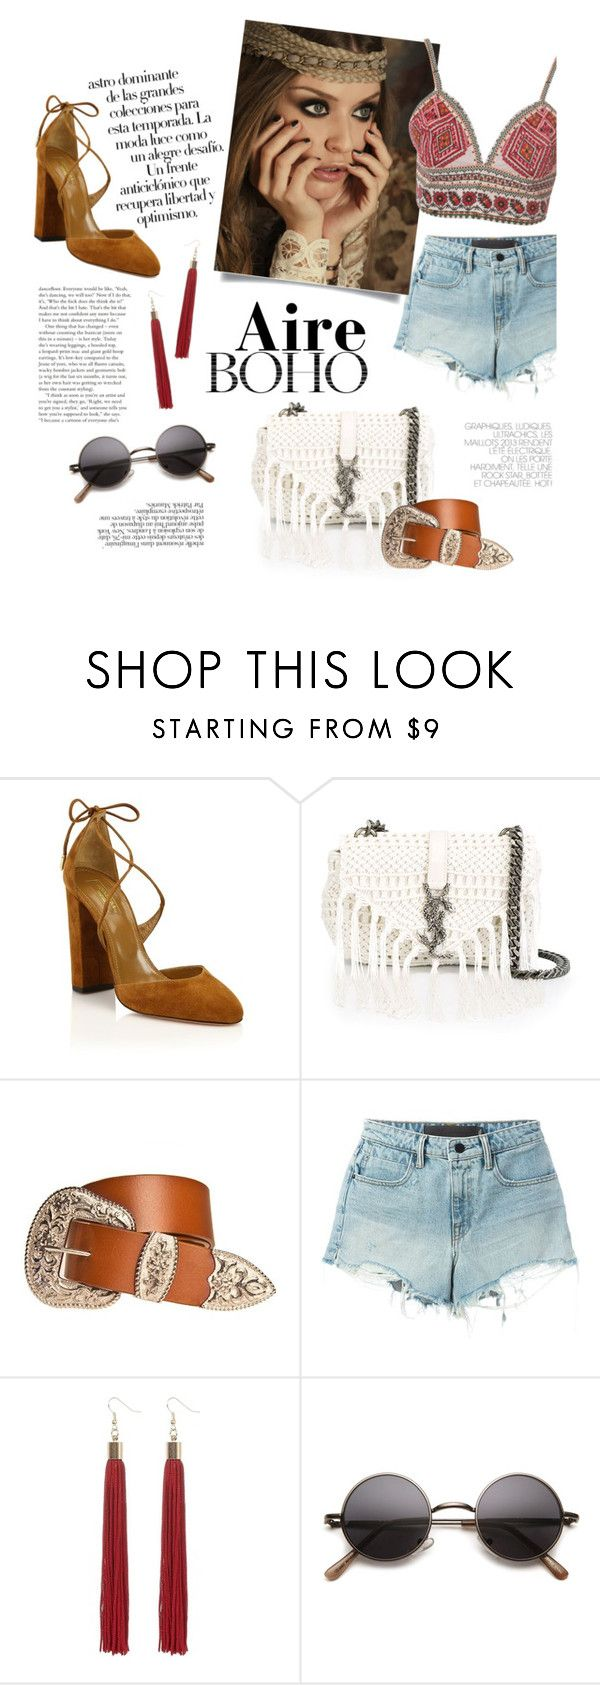 """""""summer is not over"""" by modernbovary ❤ liked on Polyvore featuring Arco, Aquazzura, Yves Saint Laurent, Alexander Wang, Behance, Glamorous and country"""